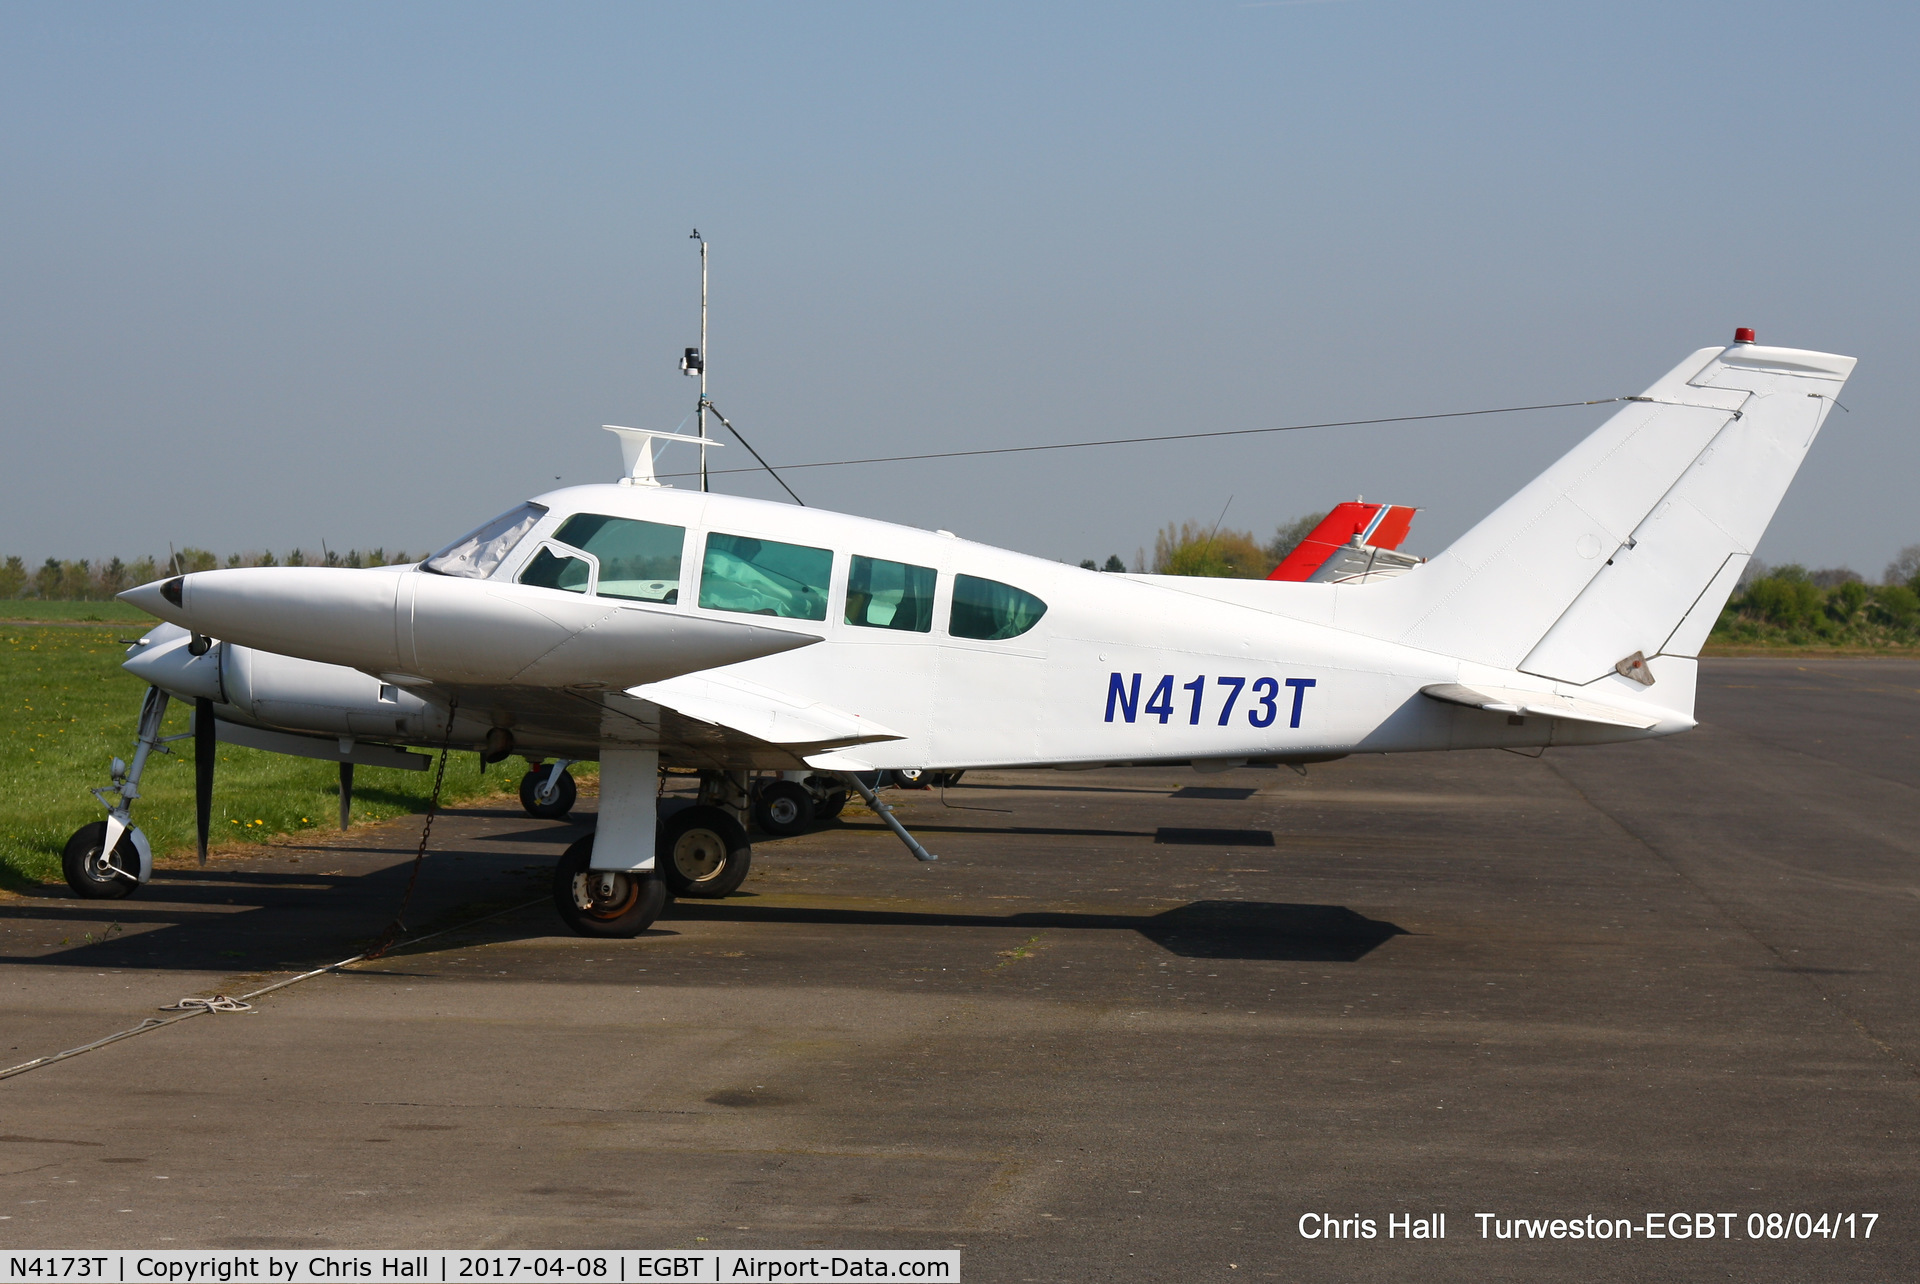 N4173T, 1965 Cessna 320D Executive Skyknight C/N 320D0073, at Turweston